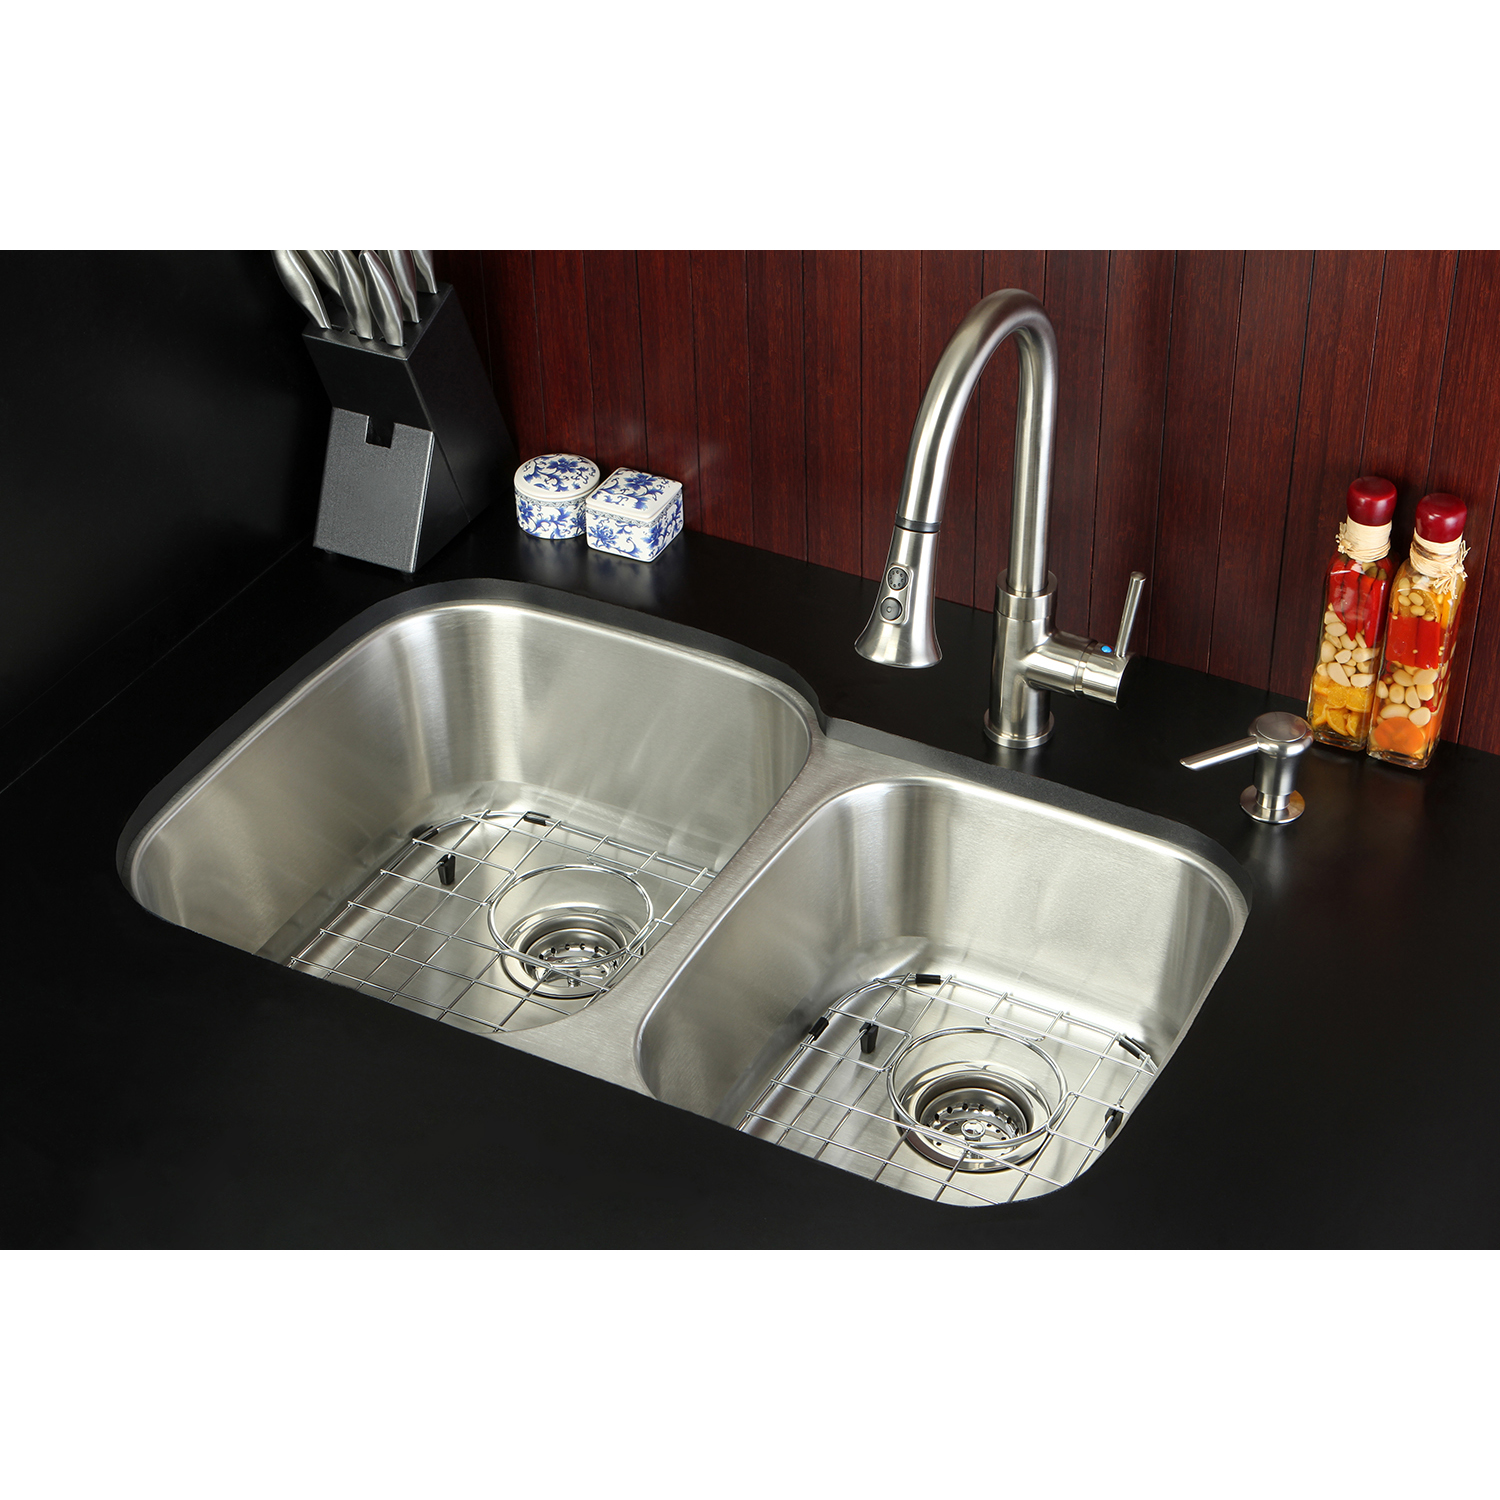 kingston brass loft kzgkud3221f undermount double bowl kitchen sink and faucet combo with. Black Bedroom Furniture Sets. Home Design Ideas